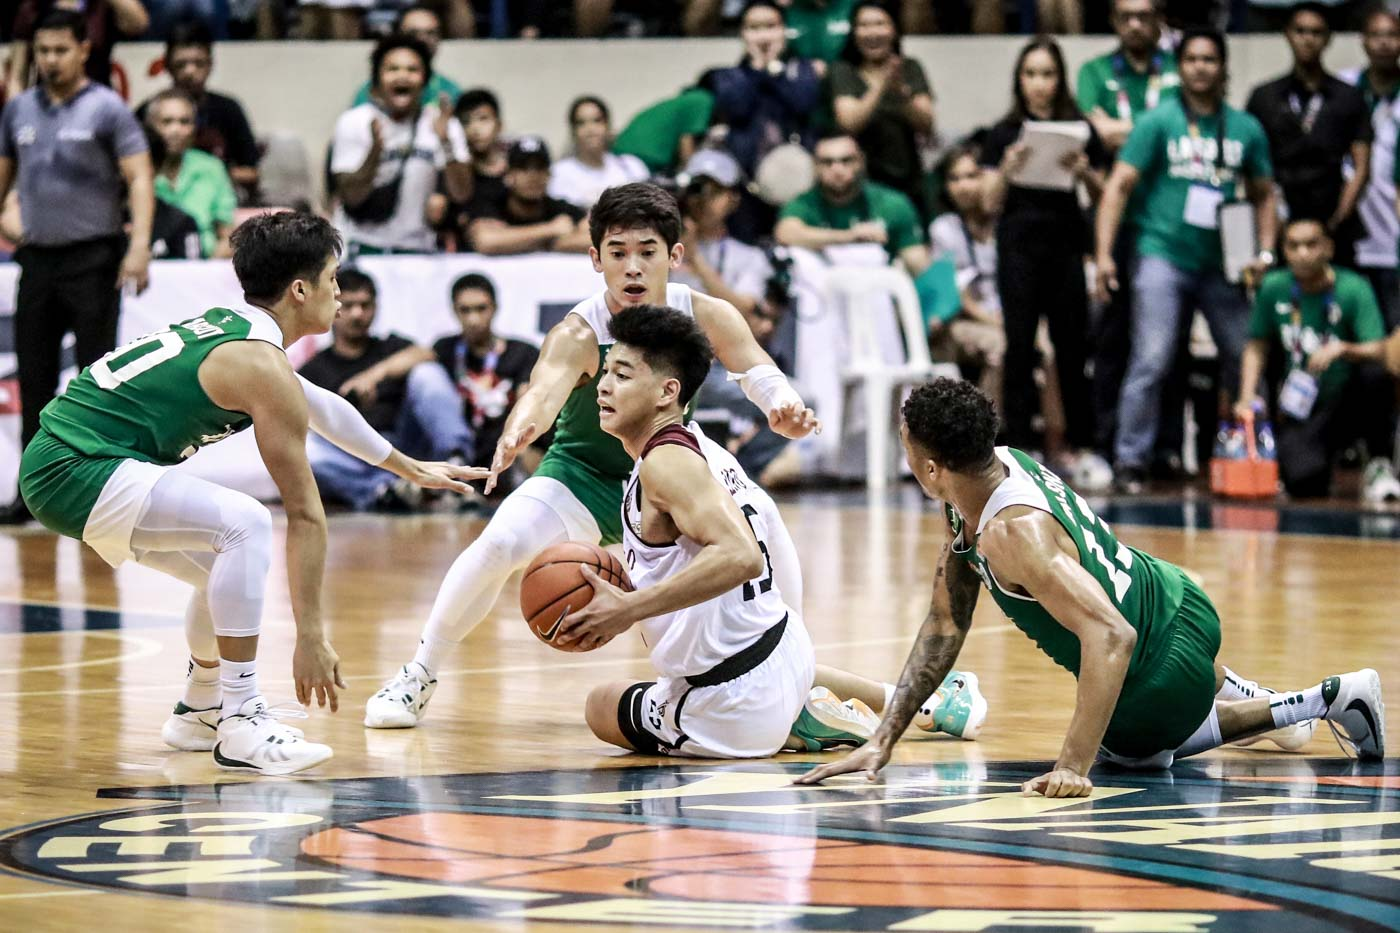 FIGHTBACK. La Salle storms back from 16 points down to rattle UP, but Ricci Rivero helps the Maroons regain their bearings. Photo by Michael Gatpandan/Rappler